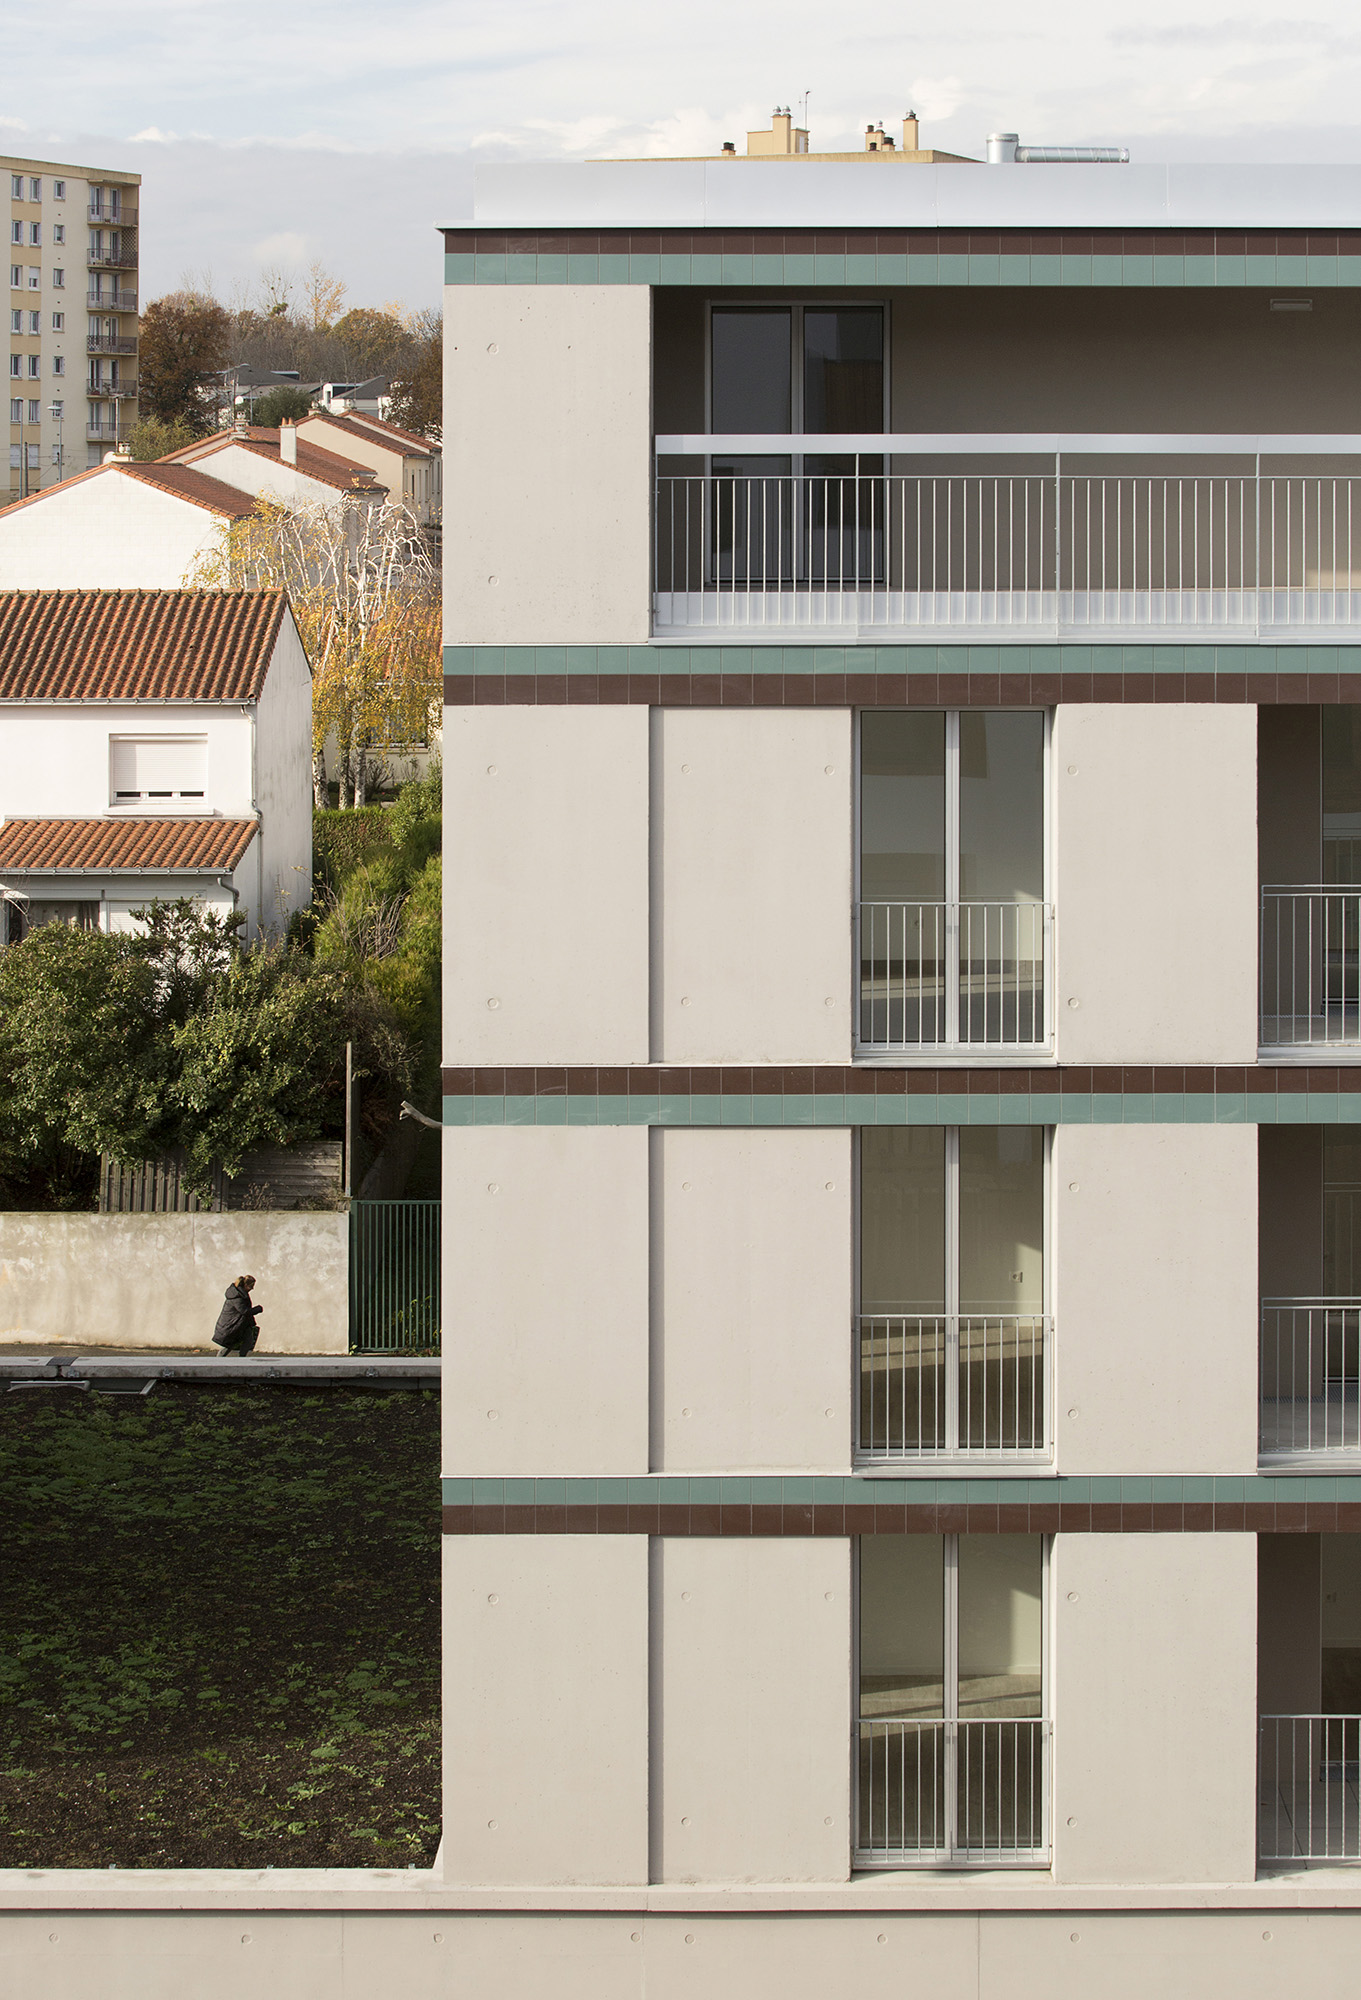 LOGEMENTS COLLECTIFS - DERVALLIERES - 2